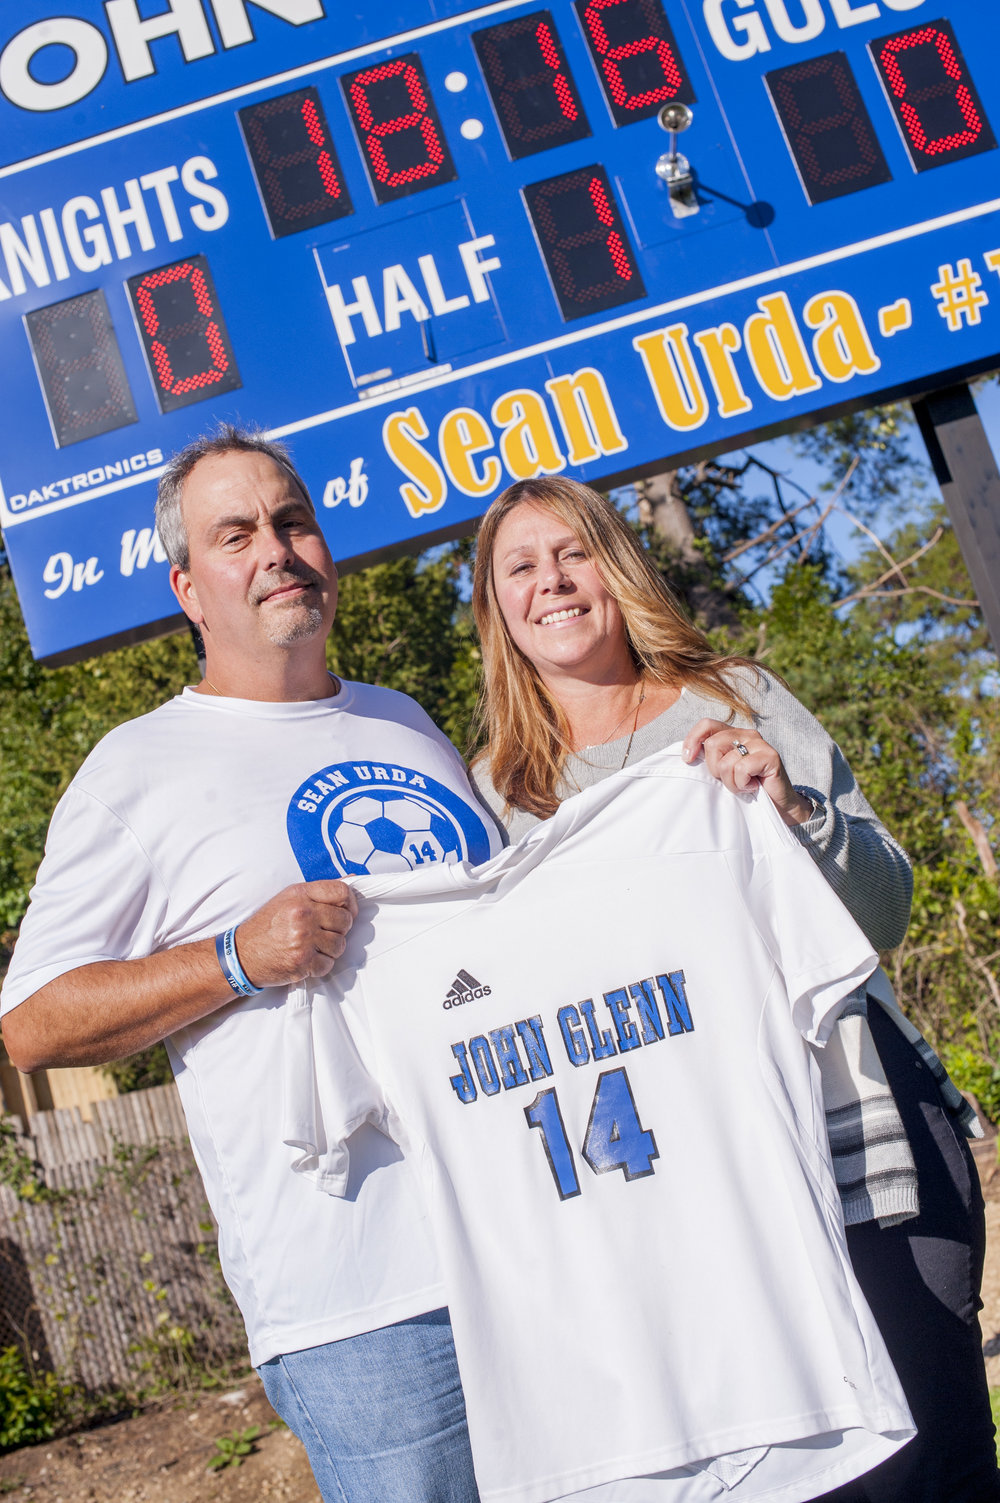 Nicole and Gary Urda, parents of the late Sean Urda, hold a no. 14 jersey. Sean, who was killed in a snow tubing accident last year, wore no. 14 when he played on Elwood-John Glenn's boys soccer team.